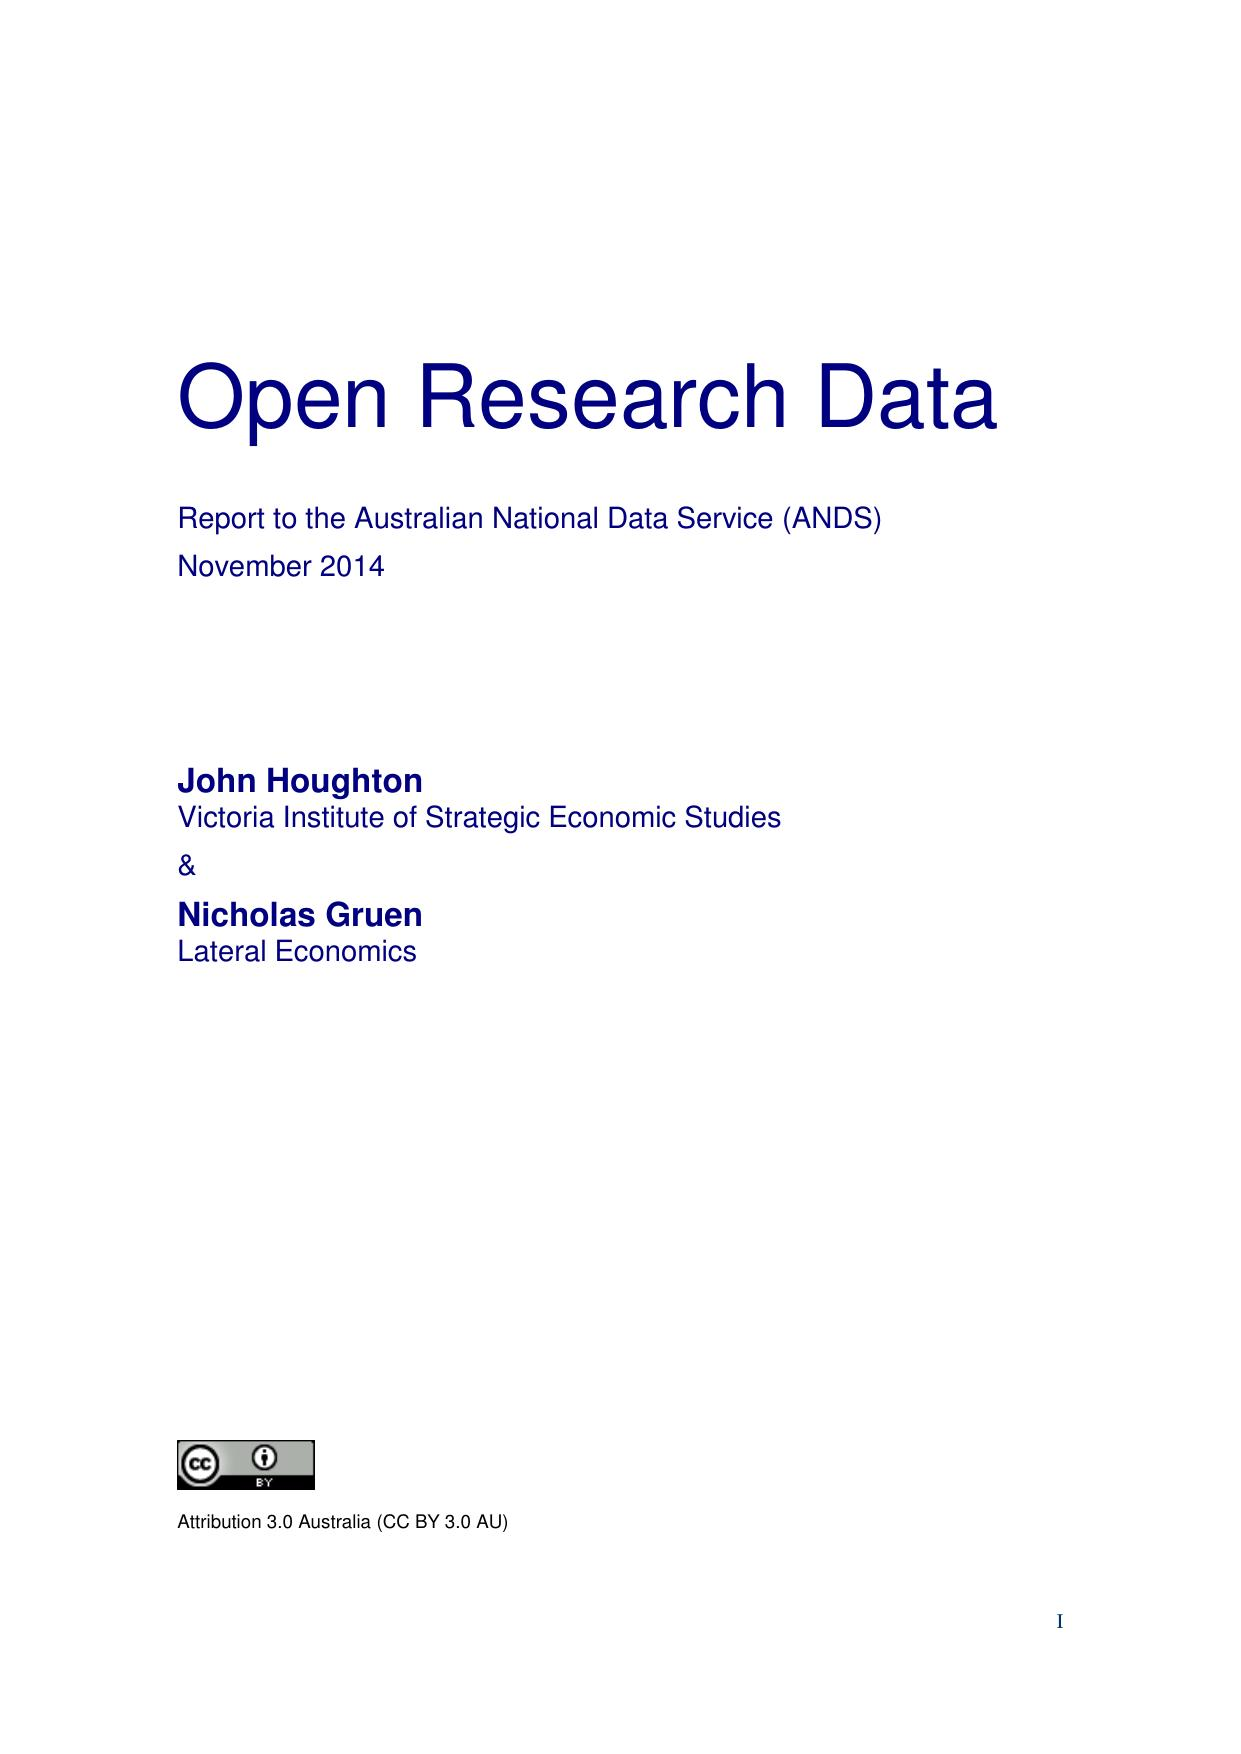 Open Research Data: Report to the Australian National Data Service (ANDS)